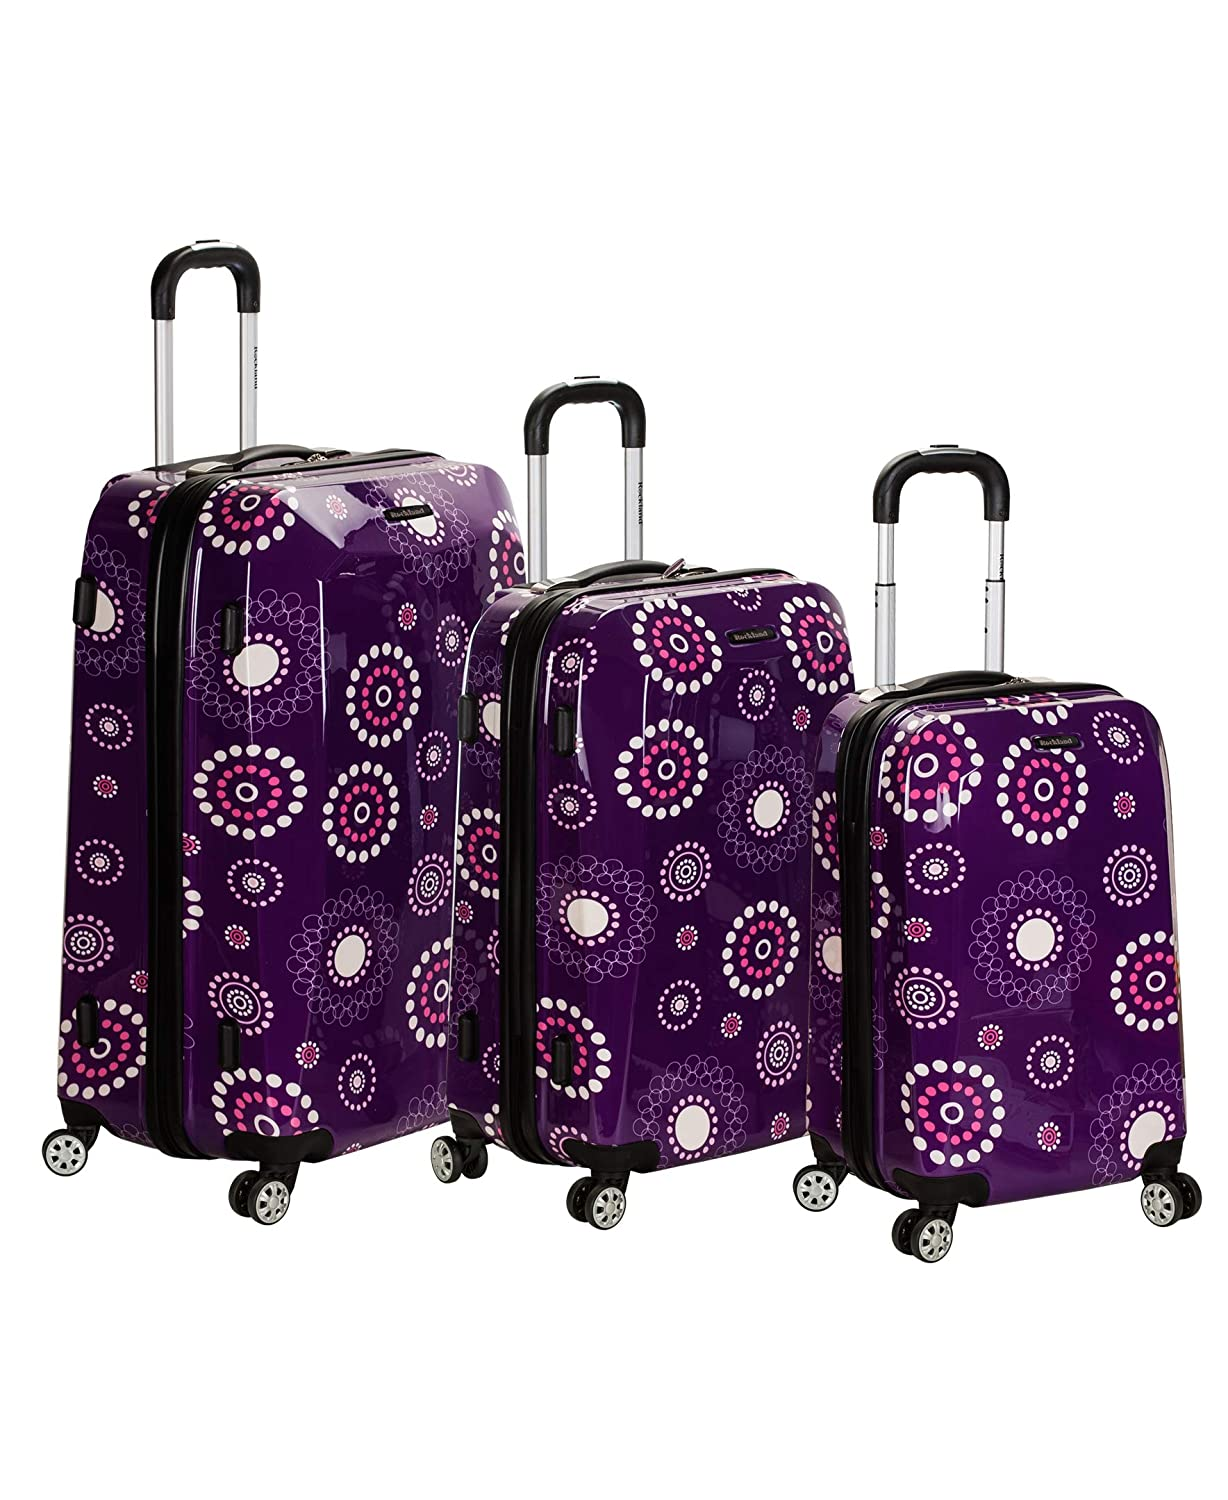 Pink Pearl 3-Piece One Size Rockland F150 Vision Polycarbonate Luggage Set